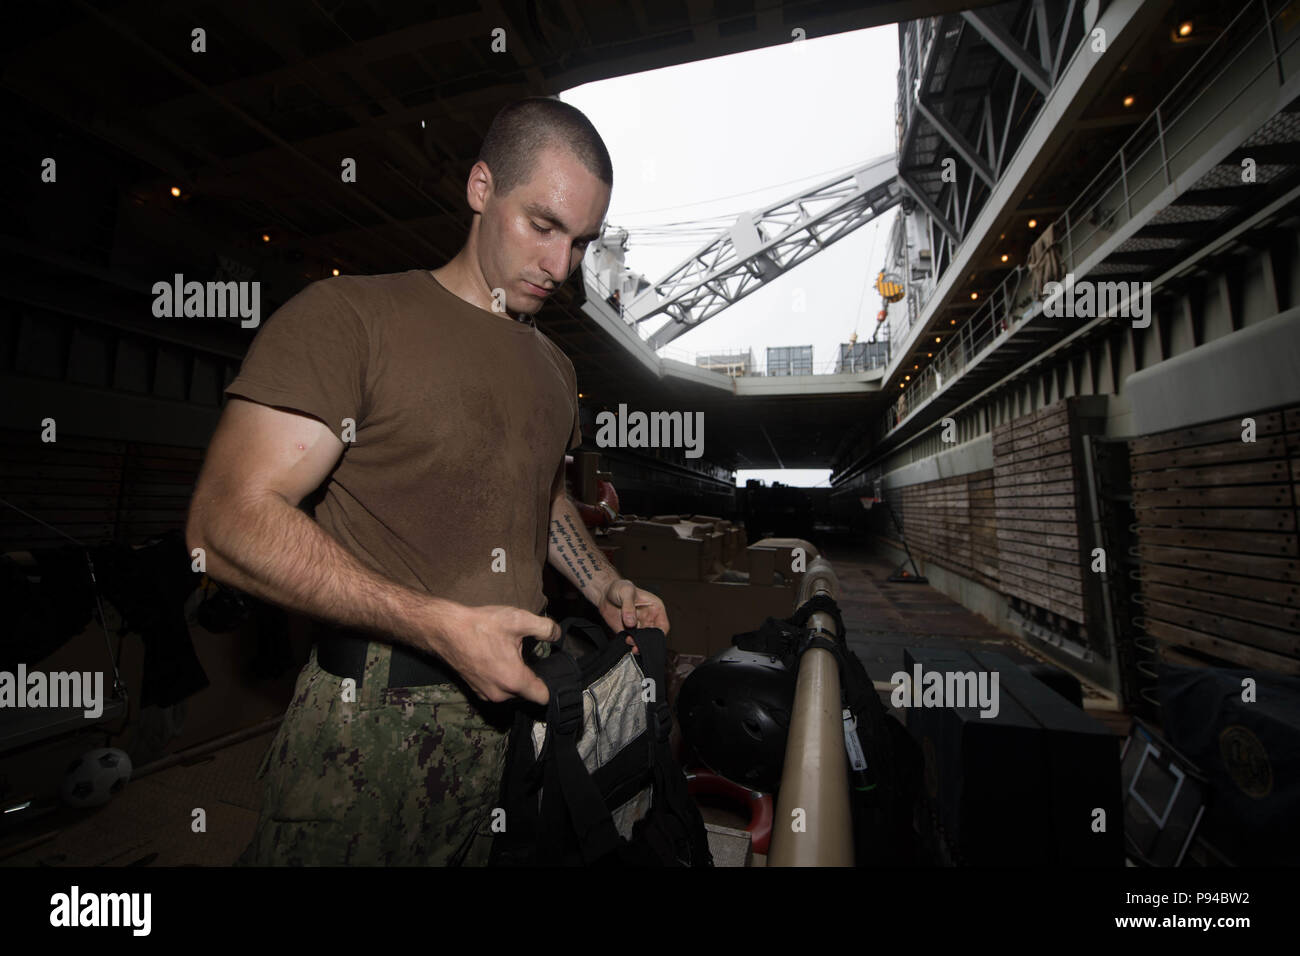 180709-N-GX781-0084 CARIBBEAN SEA (July 9, 2018) Gunner's Mate Seaman Andrew Badalich performs maintenance on tactical flotation devices aboard the Whidbey Island-Class Dock Landing Ship USS Gunston Hall (LSD 44). The ship is on deployment supporting Southern Seas, which is an annual collaborative deployment in the U.S. Southern Command area of responsibility where a task group will deploy to conduct a variety of exercises and multinational exchanges to enhance interoperability, increase regional stability, and build and maintain regional relationships with countries throughout the region thro Stock Photo